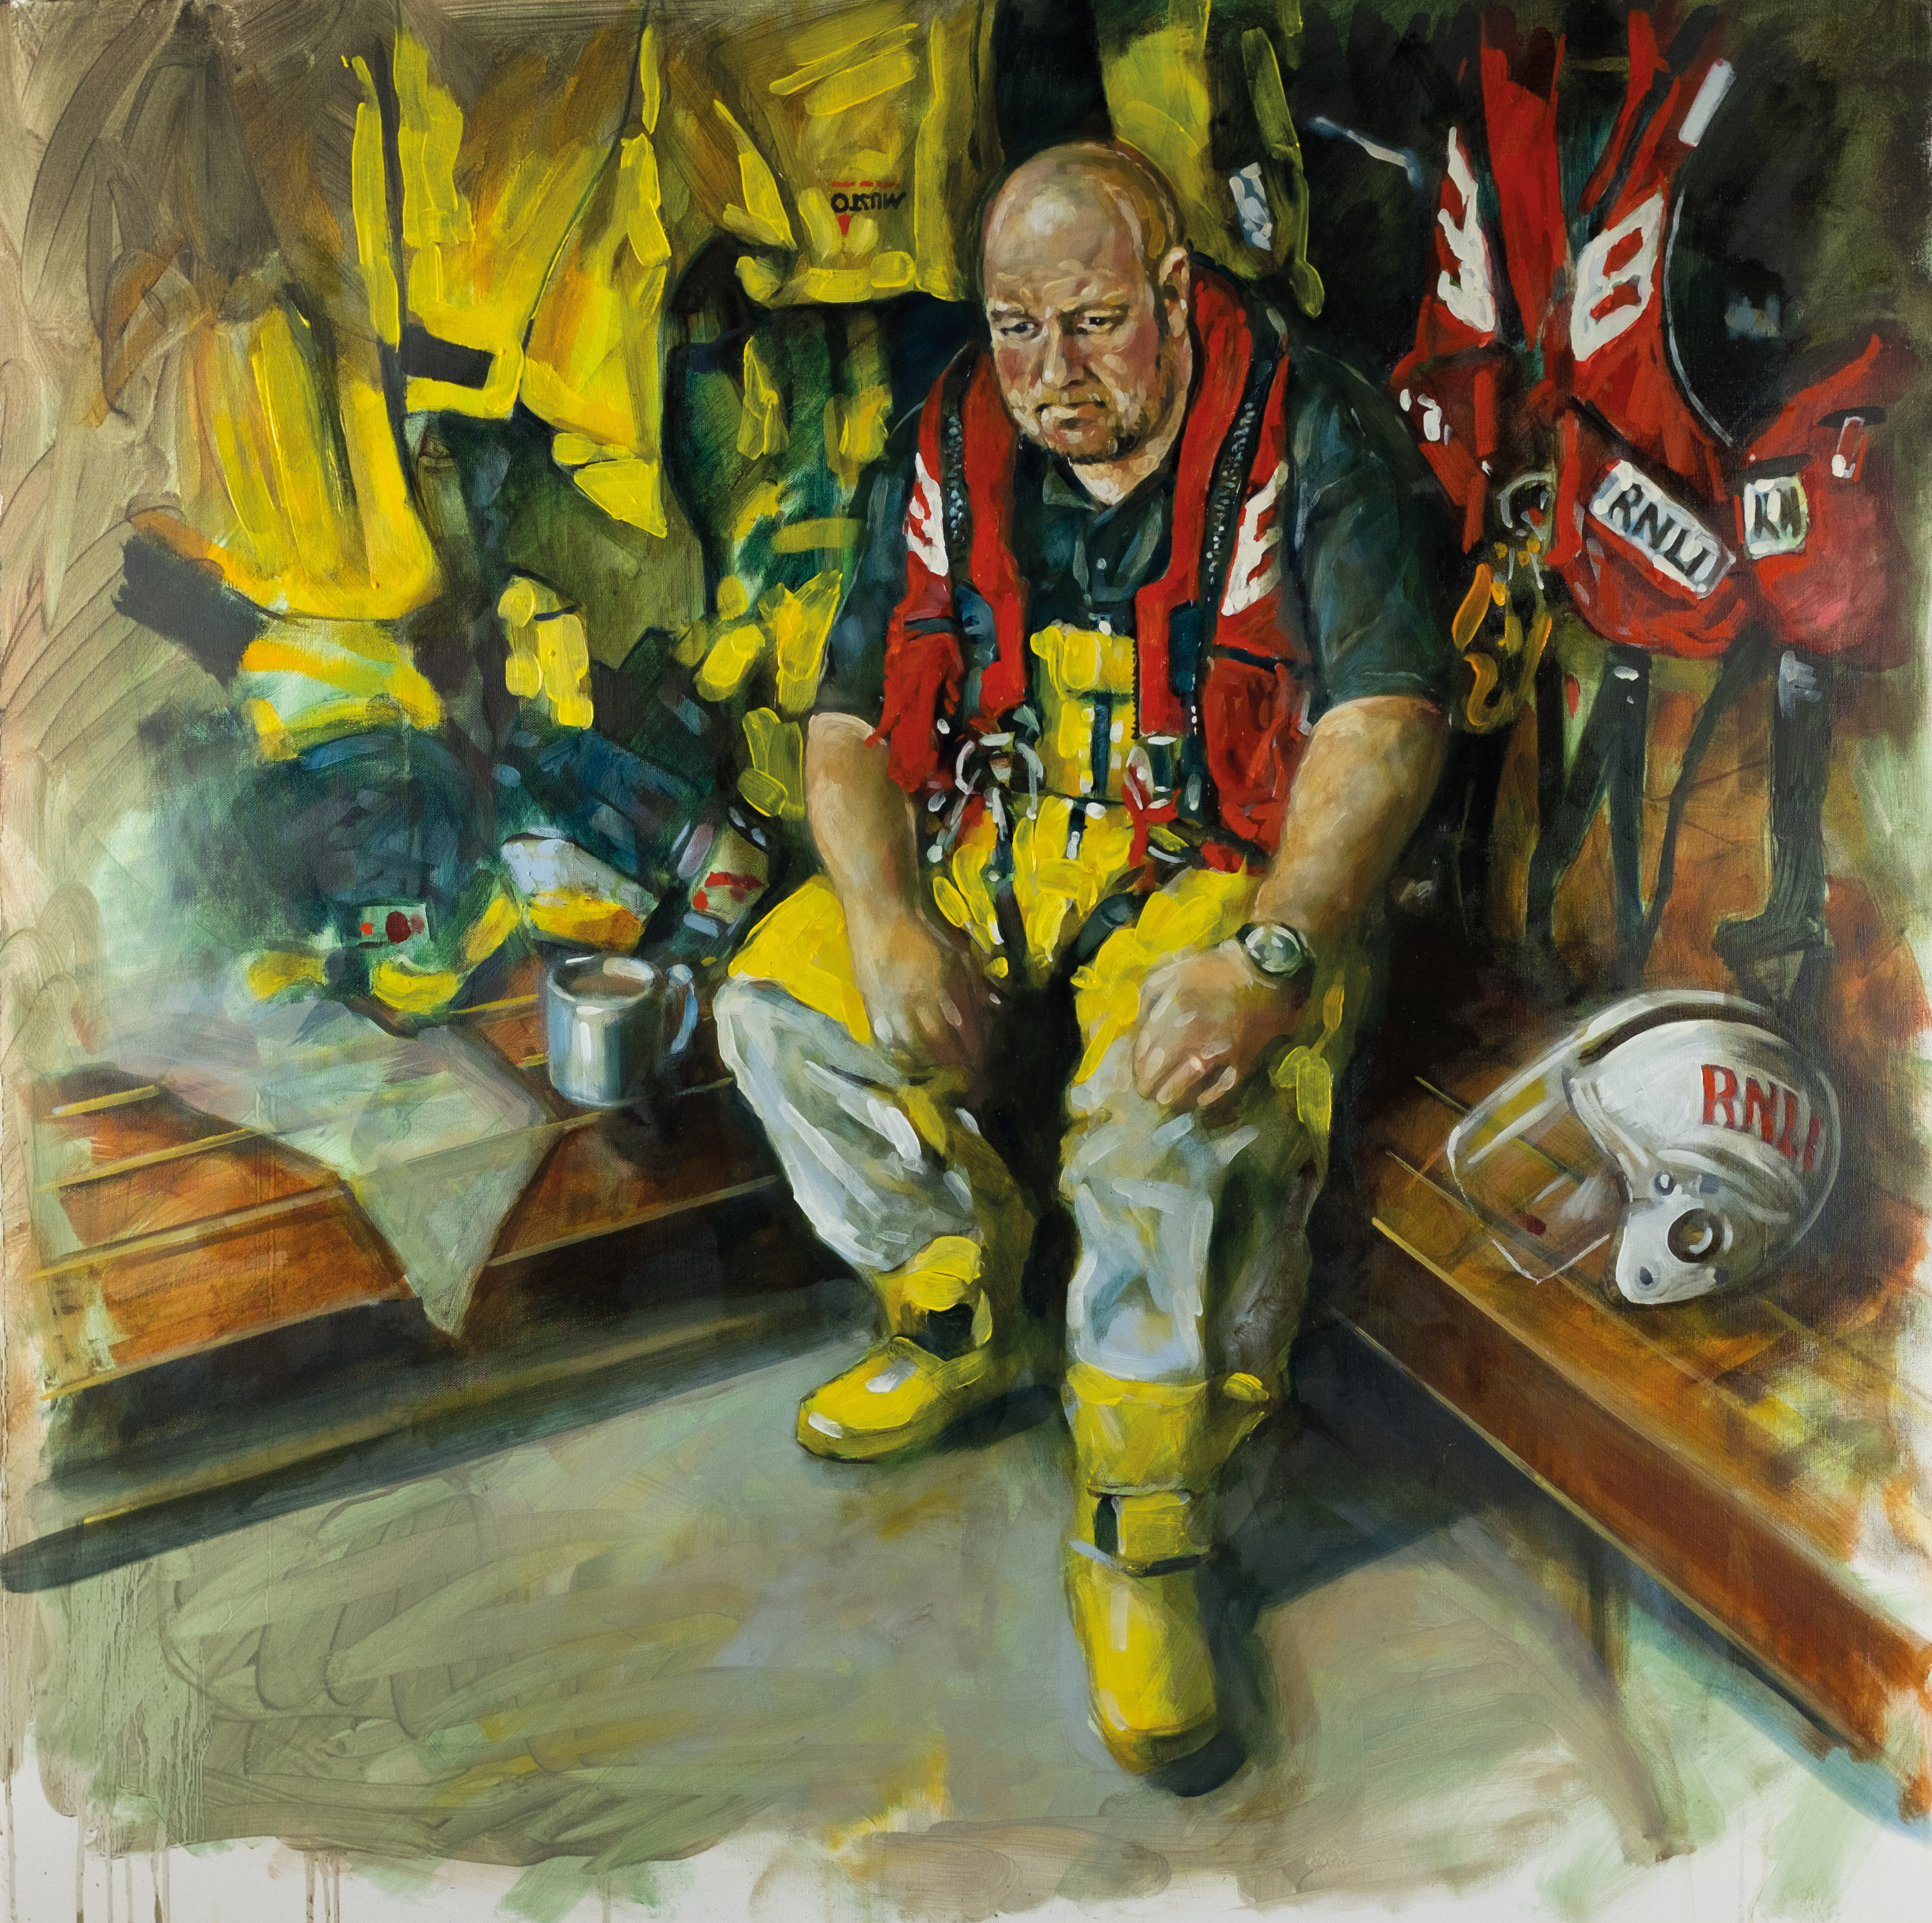 Painting of one of the lifeboat crew sitting surrounded by lifeboat kit, looking thoughtful.